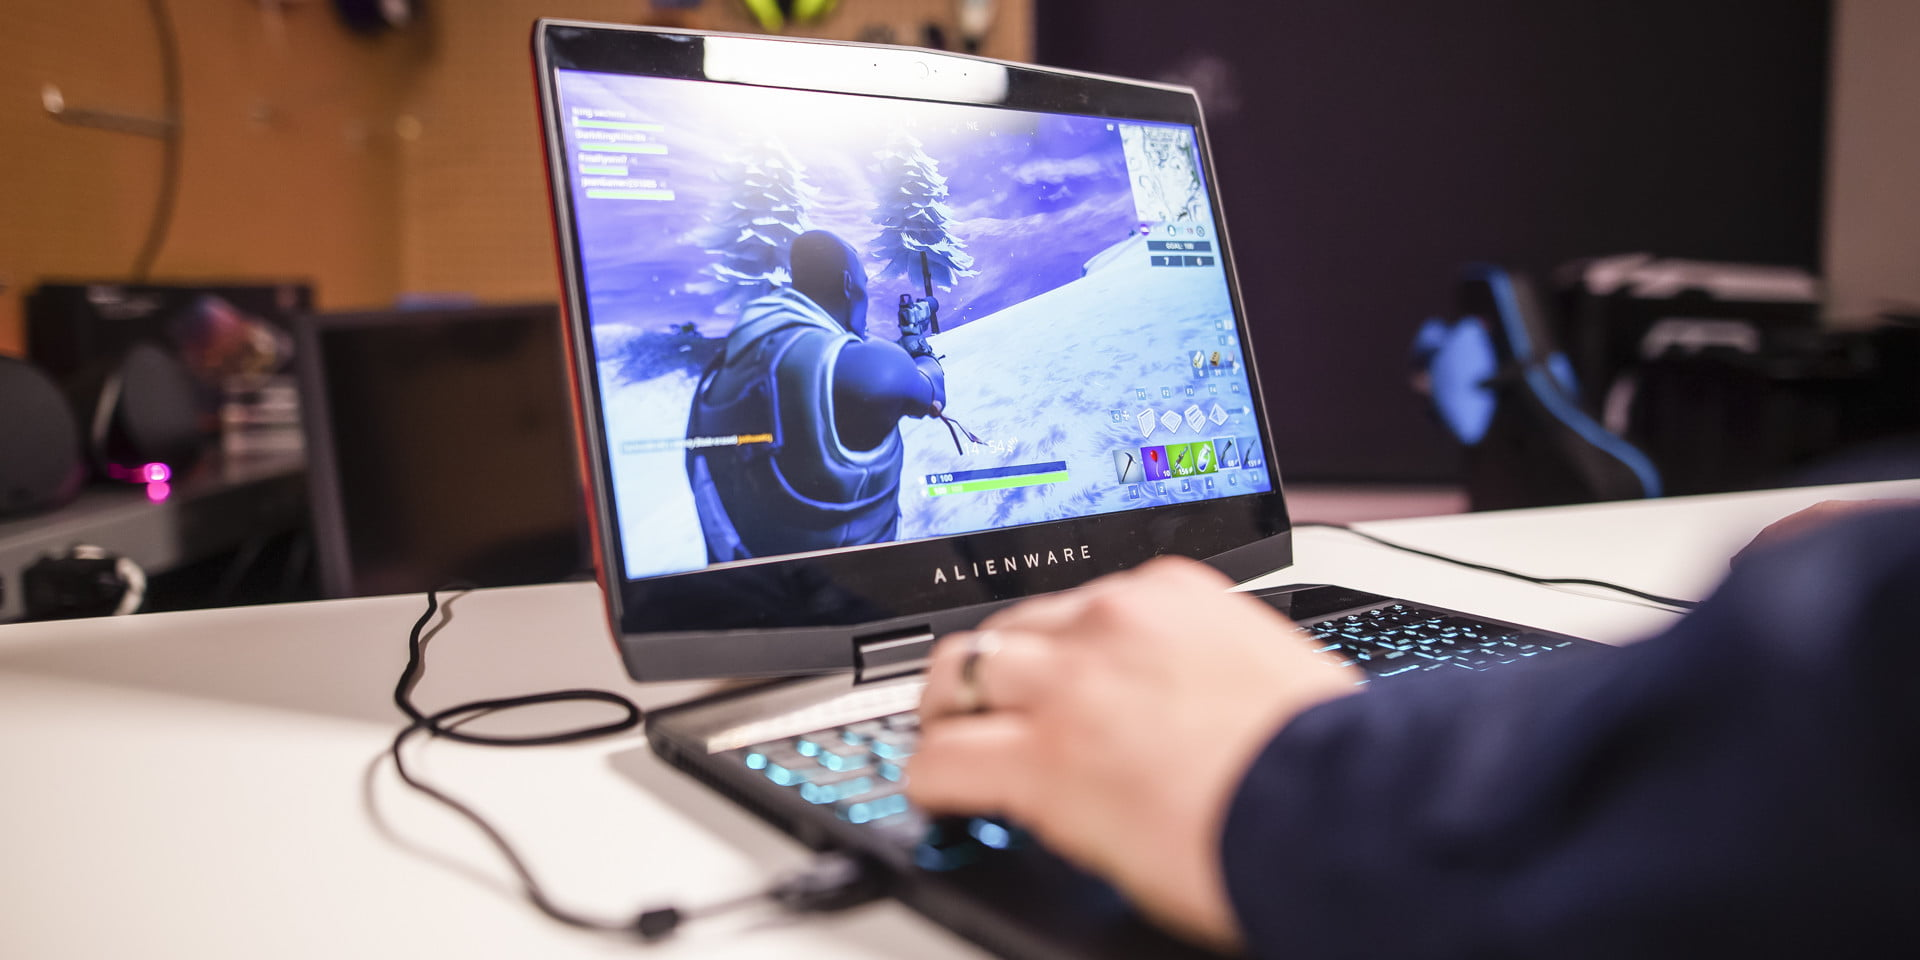 It's not just light. Alienware's m15 is an entirely new breed of gaming laptop